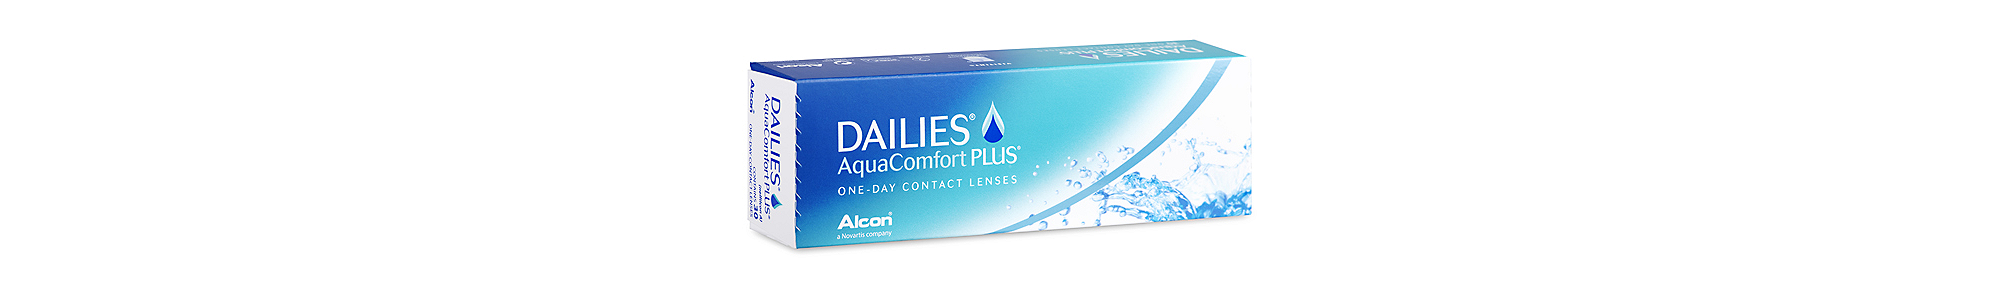 Aquacomfort Plus Daily Contact Lenses Buy Contacts Opsm